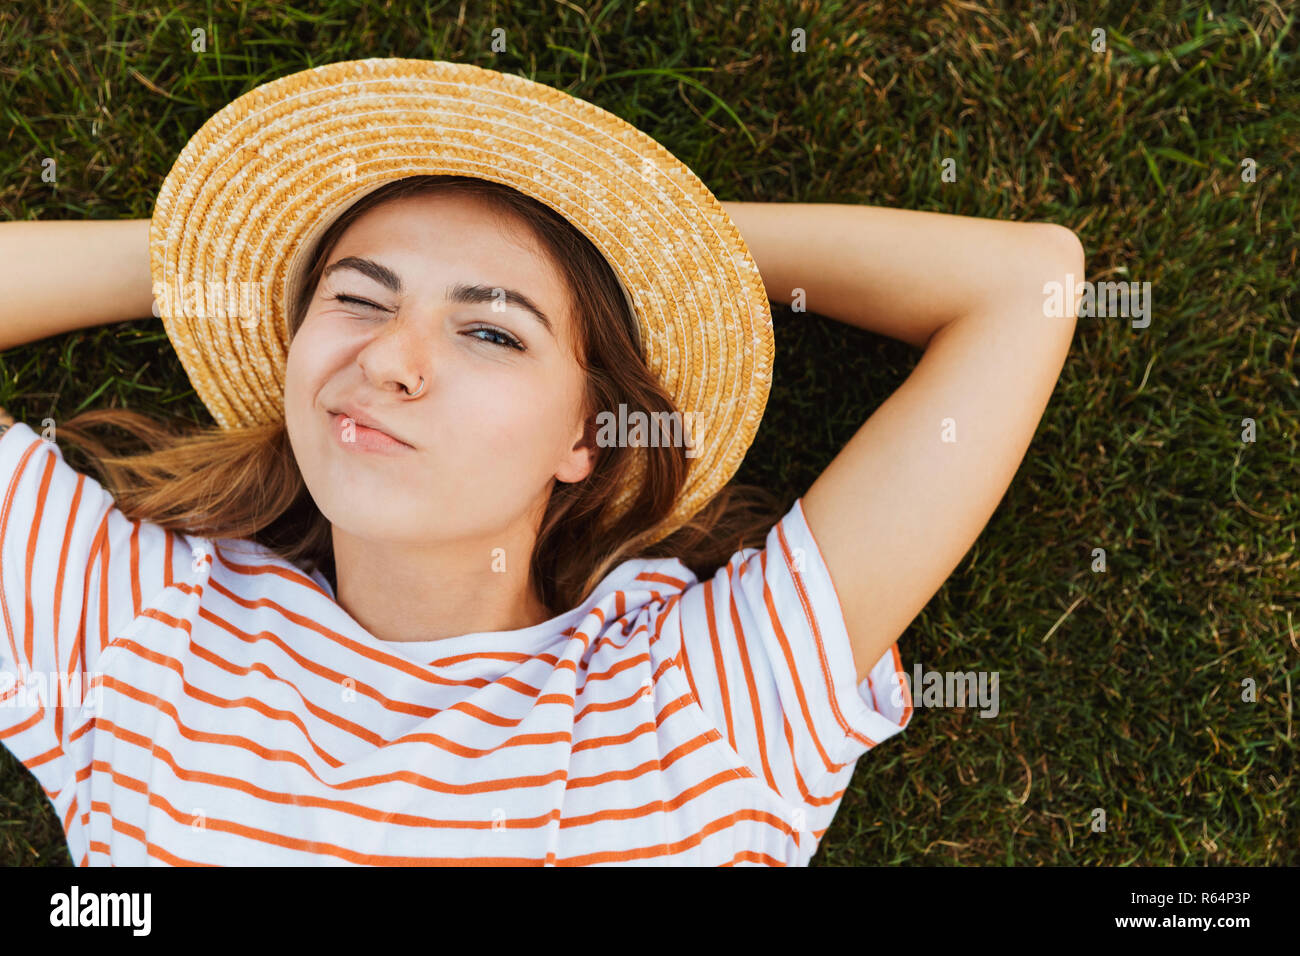 Top view of a funny young girl in summer hat laying on a grass, grimacing - Stock Image